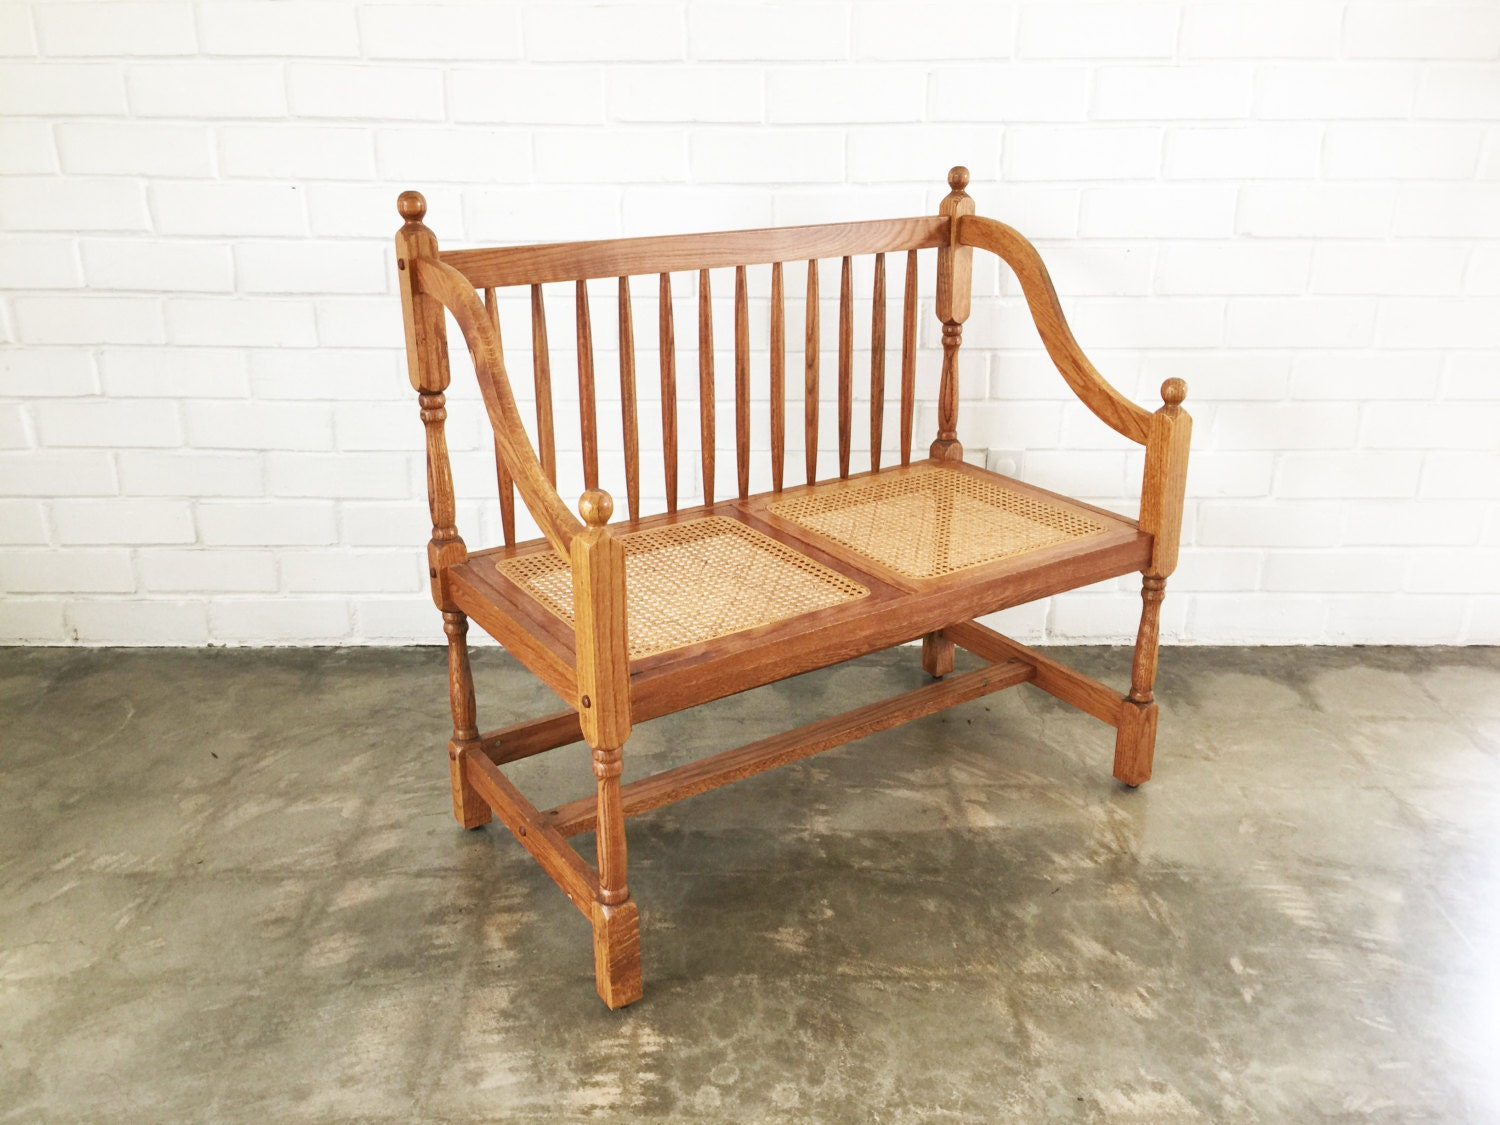 vintage wood and cane bench seat by 6thanddetroit on etsy